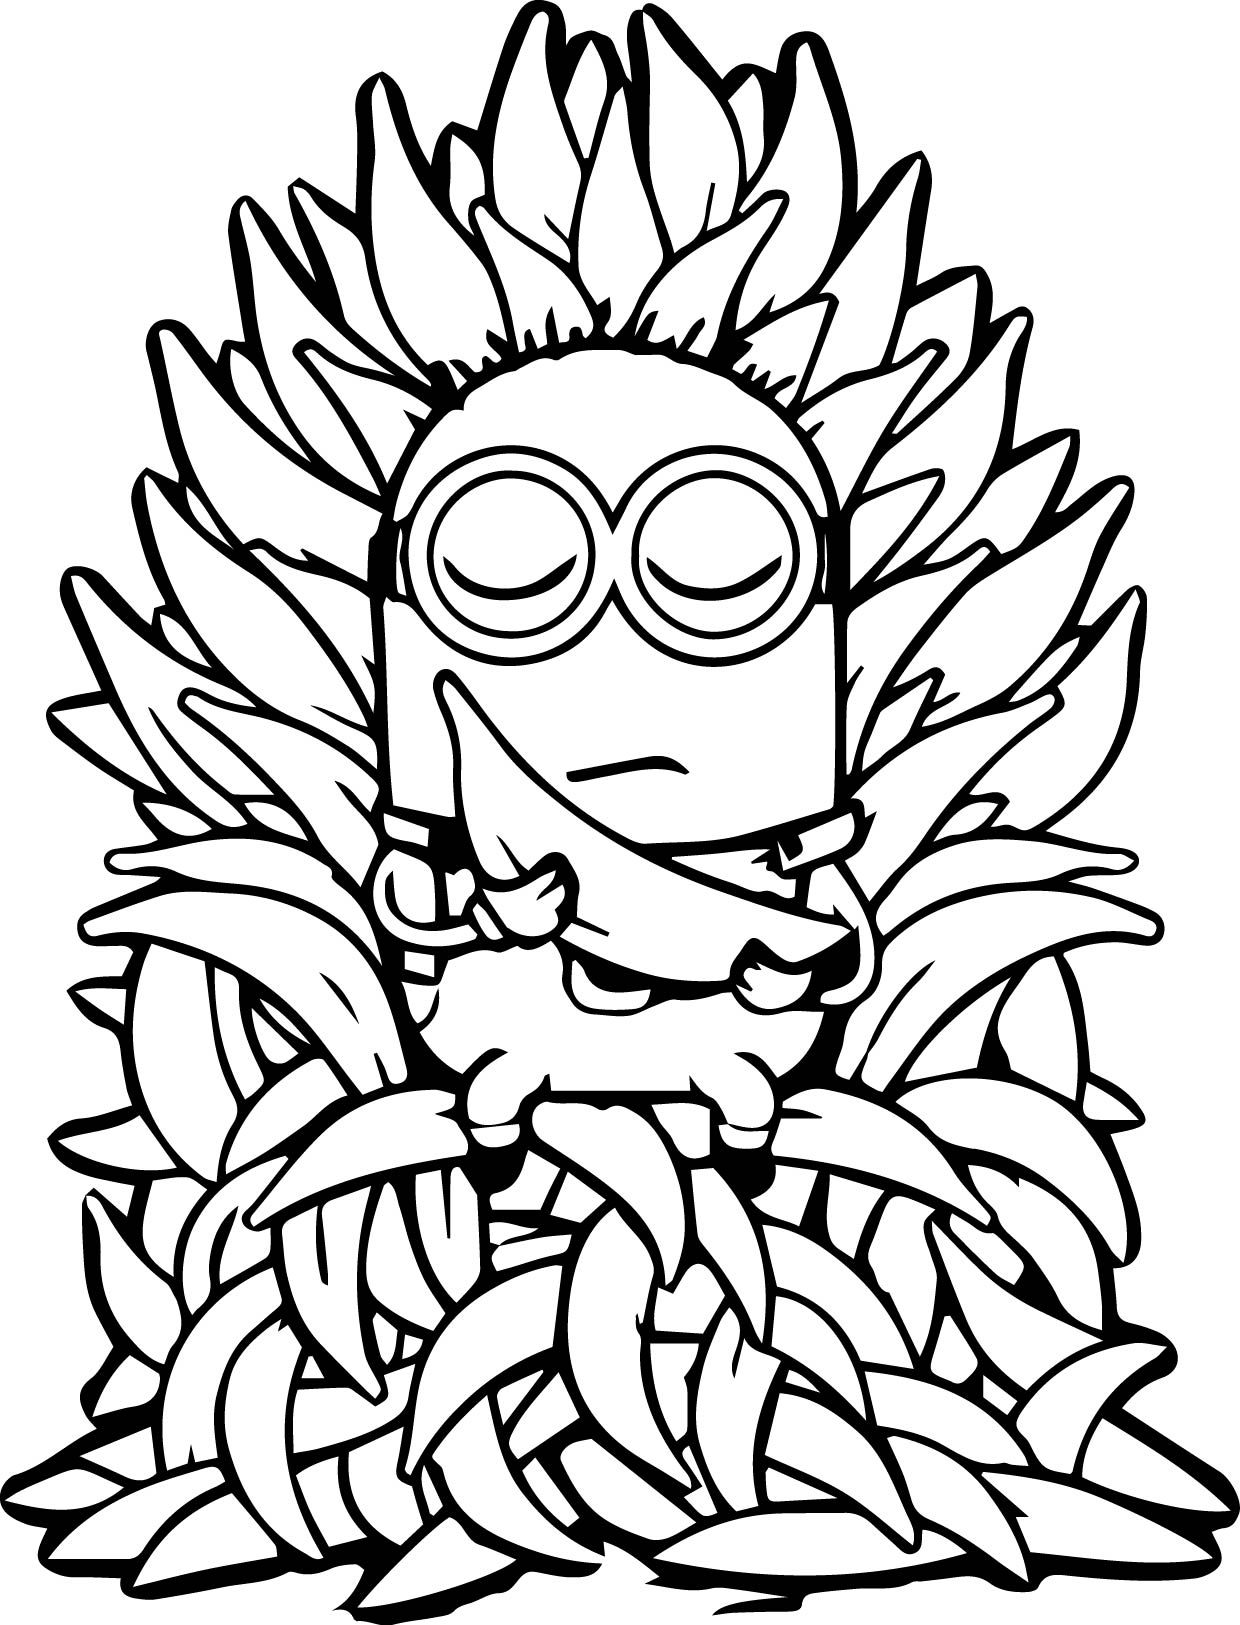 Minion throne banana meditation coloring page for Banana color page